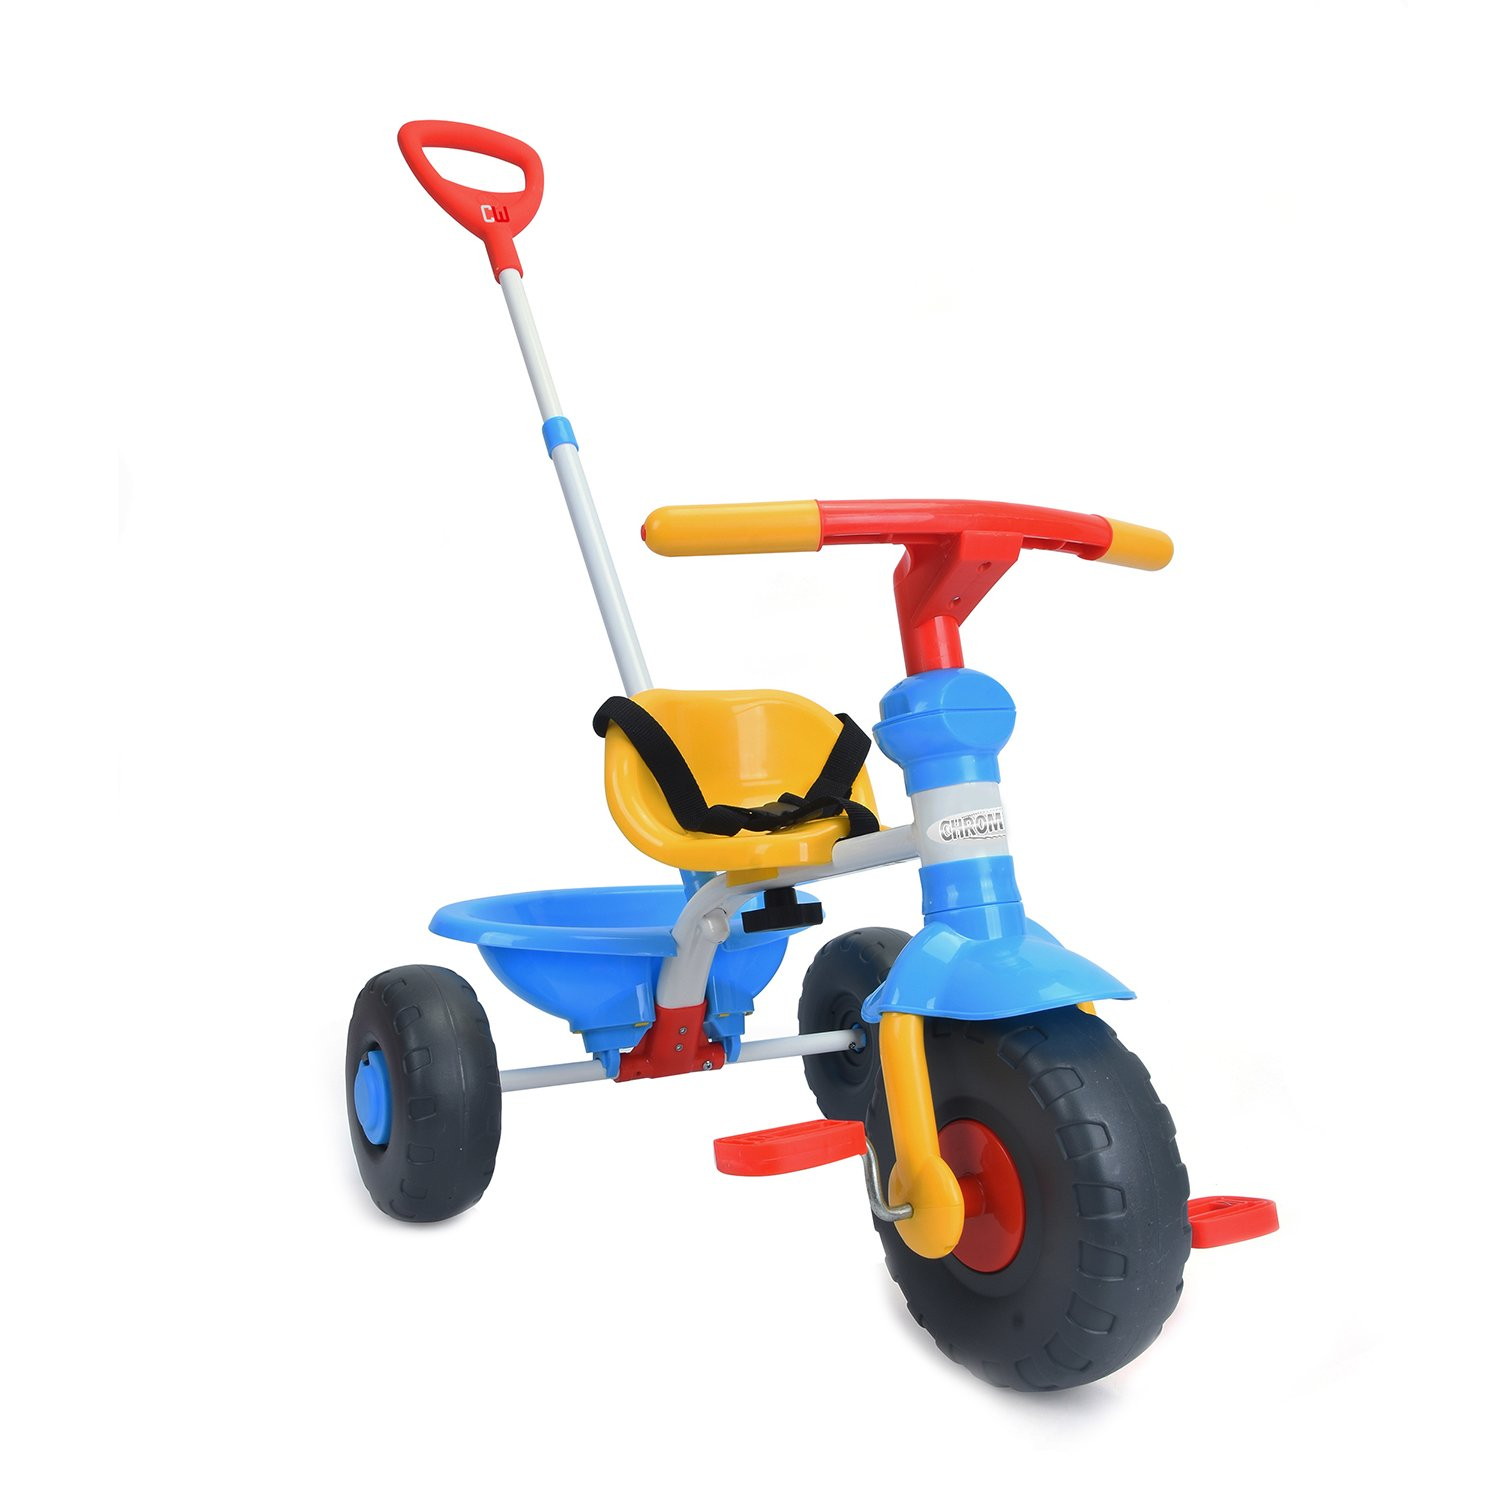 ChromeWheels Kids' Tricycle with 2 in 1 Push Handle & Easy Pedal, Blue